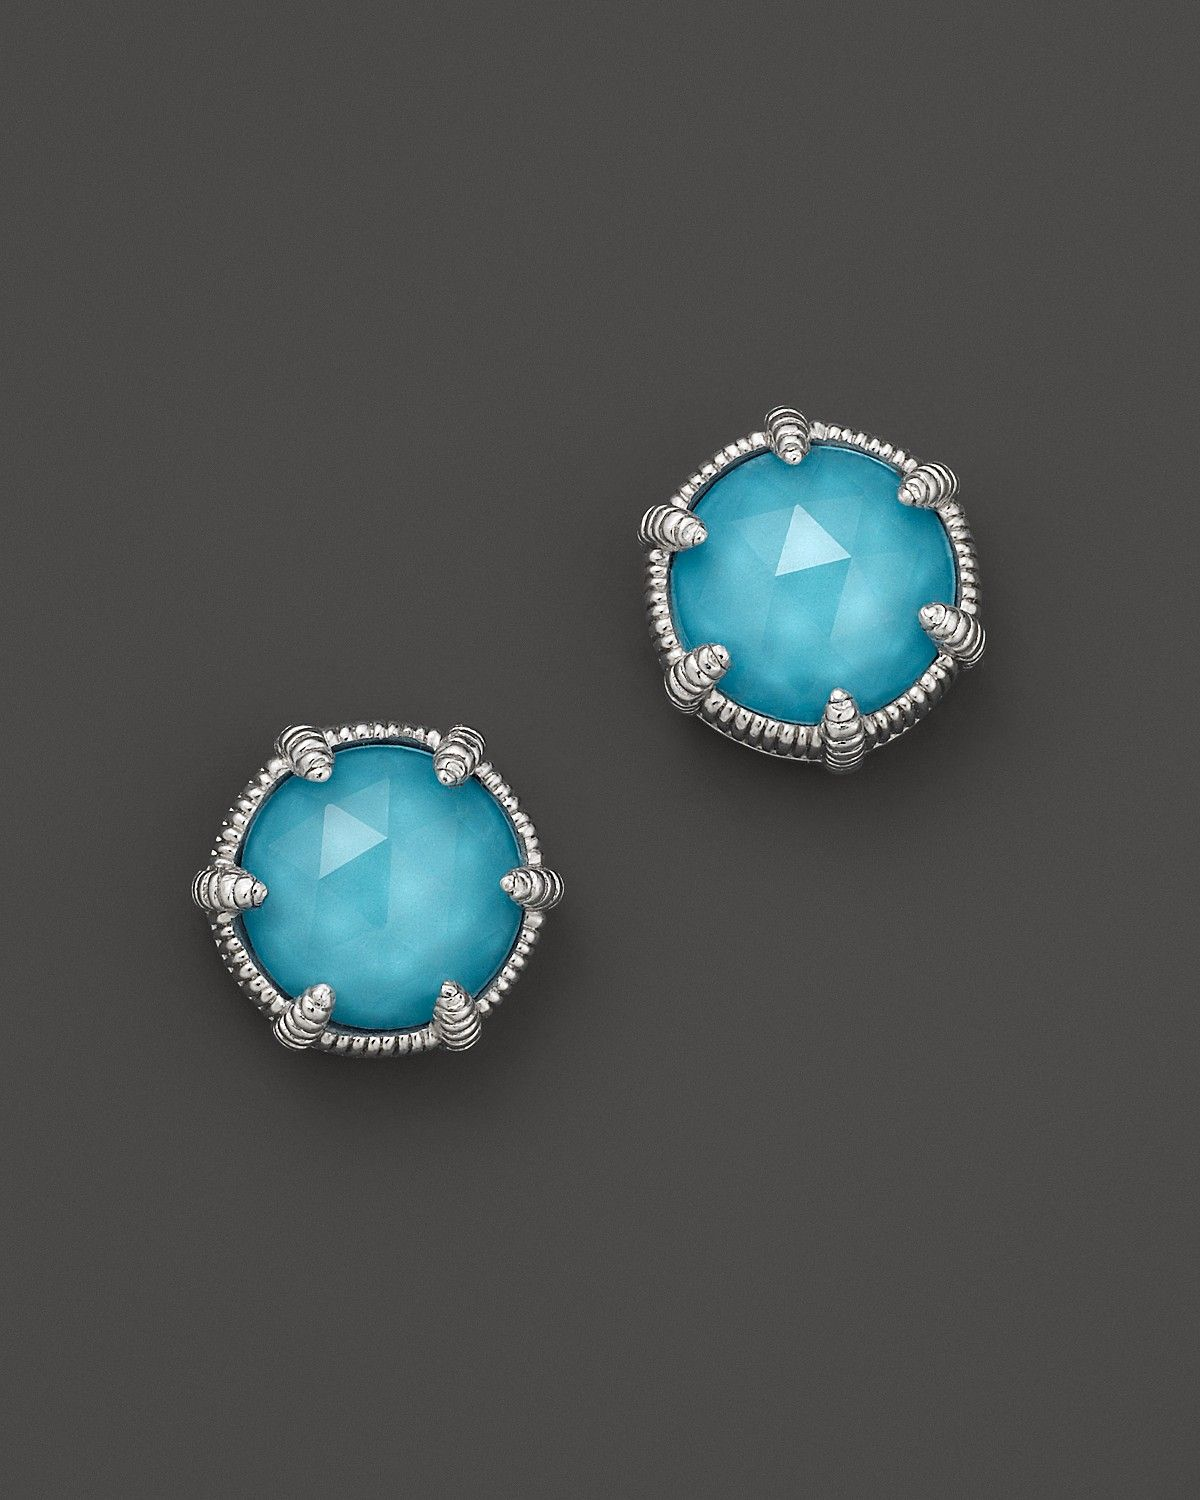 9482d82a8 Judith Ripka Sterling Silver Eclipse Stud Earrings with Turquoise Doublets  | Bloomingdale's